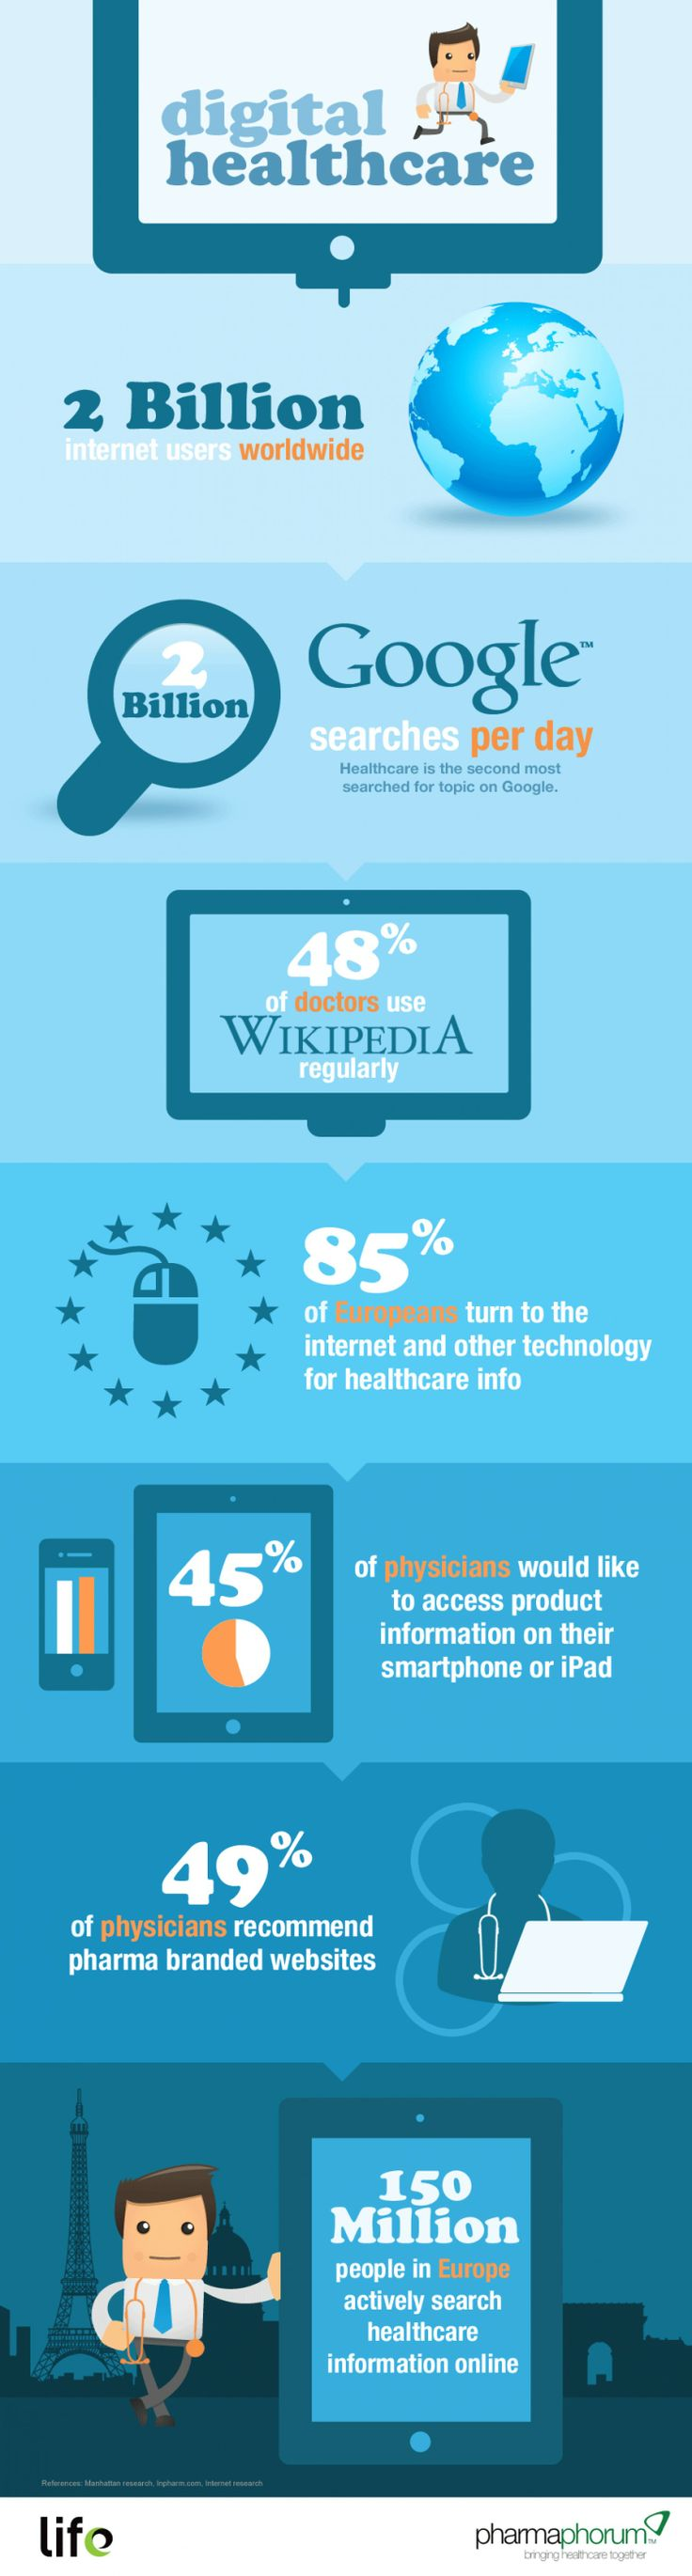 Digital in Healthcare Infographic